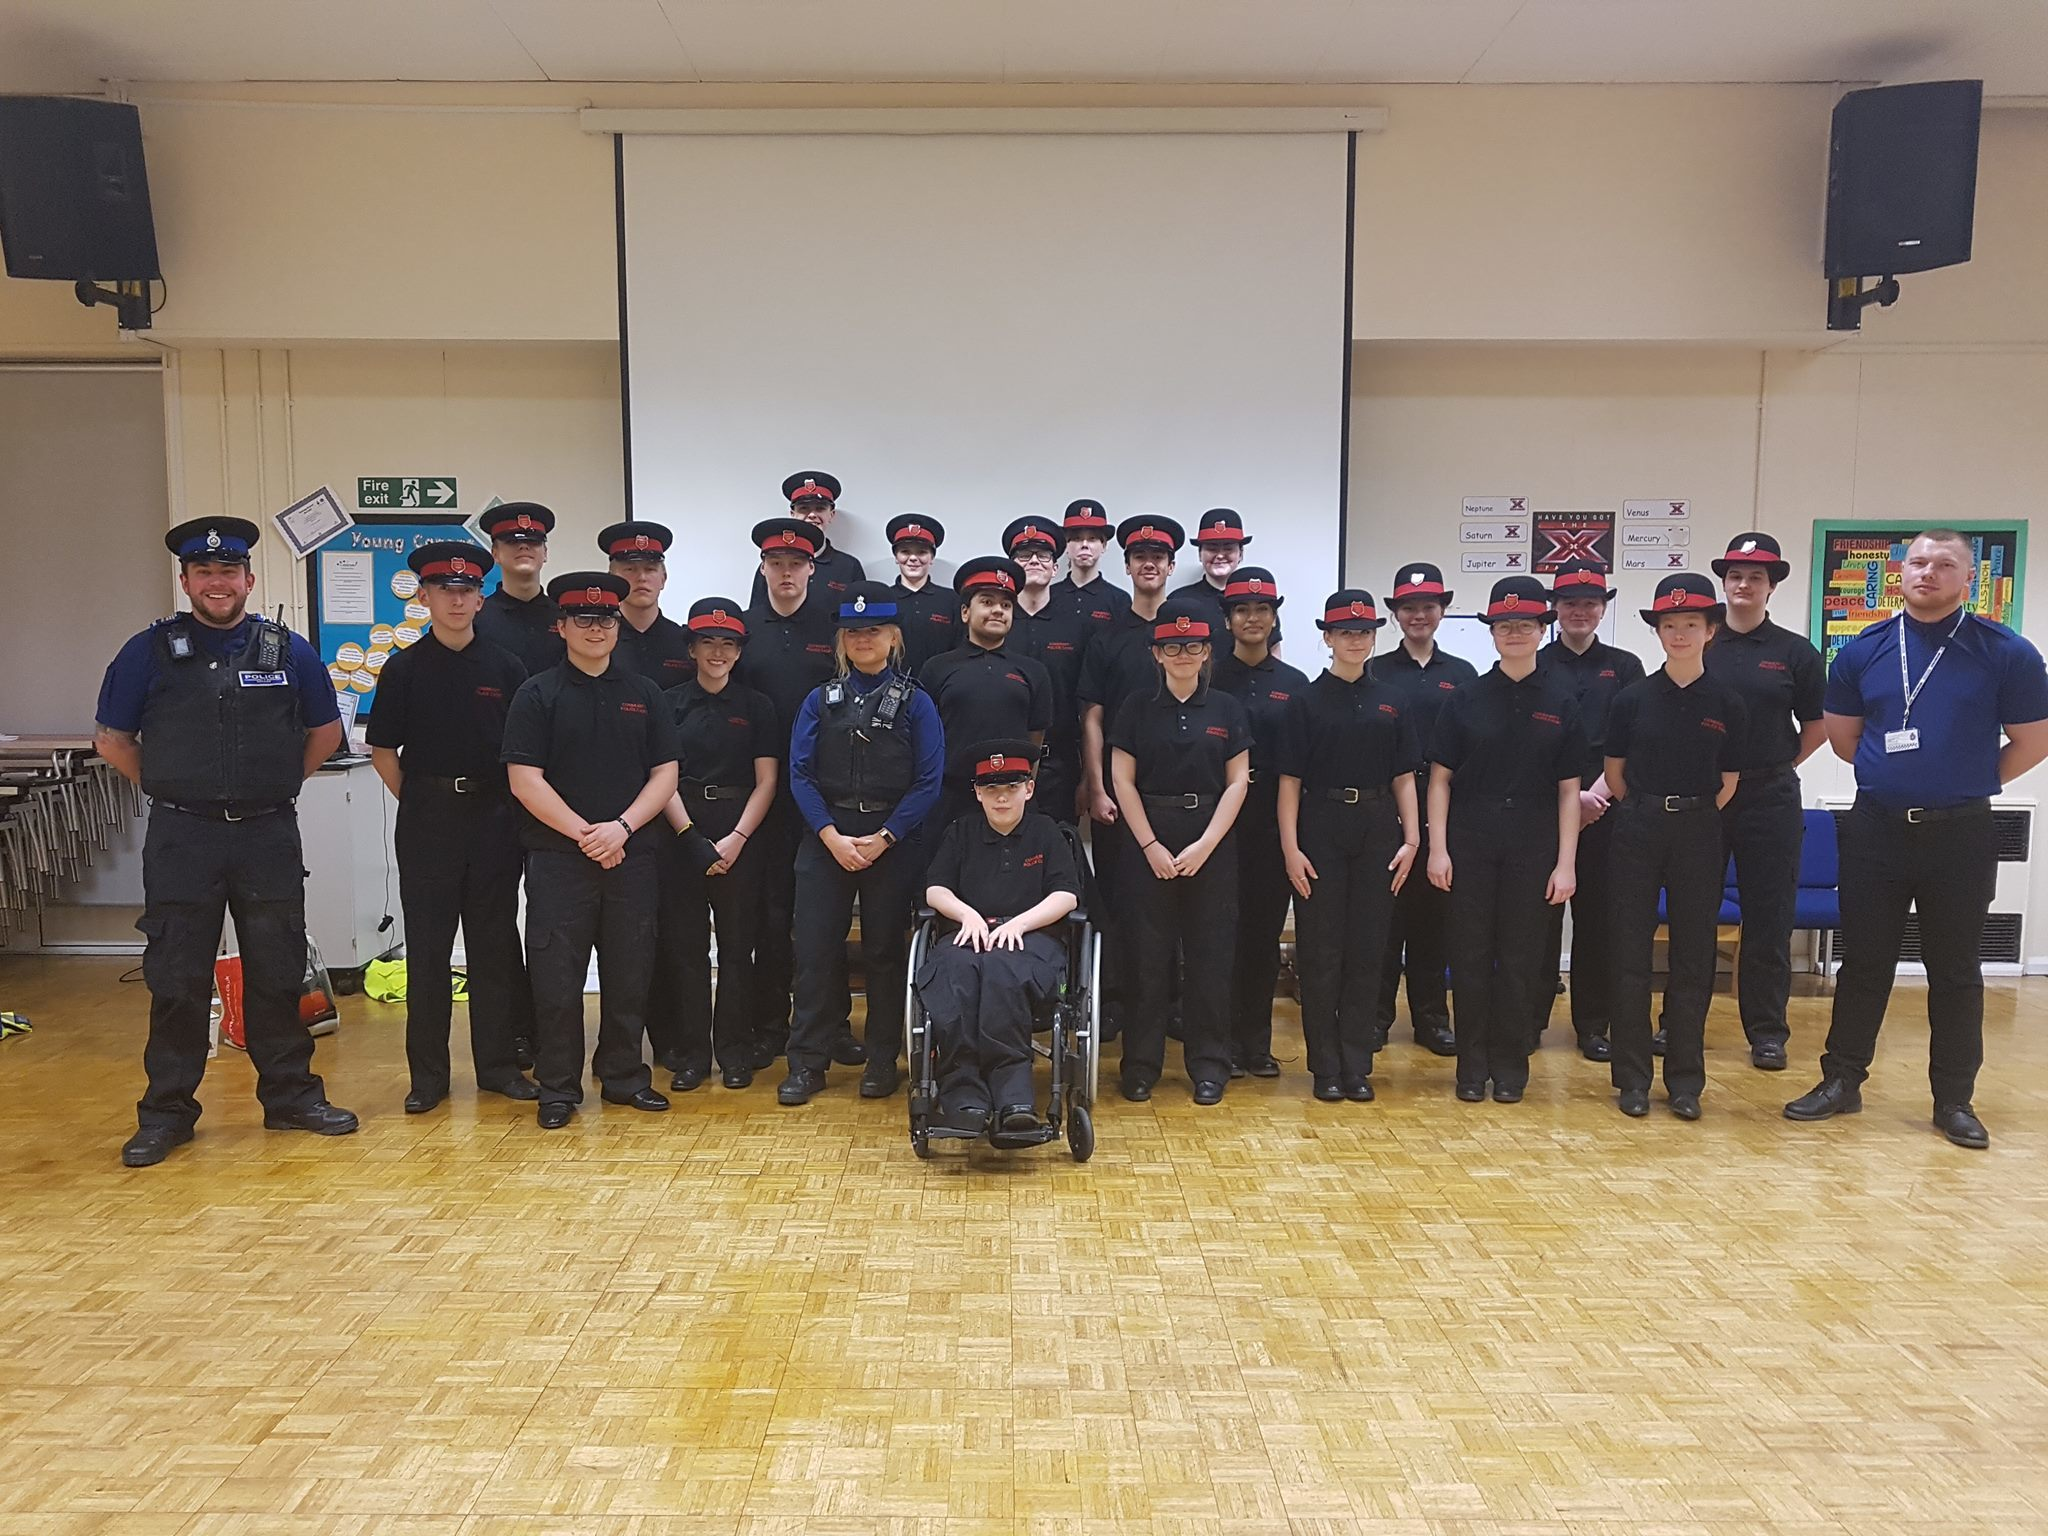 Police cadets in Swindon get lesson on internet safety